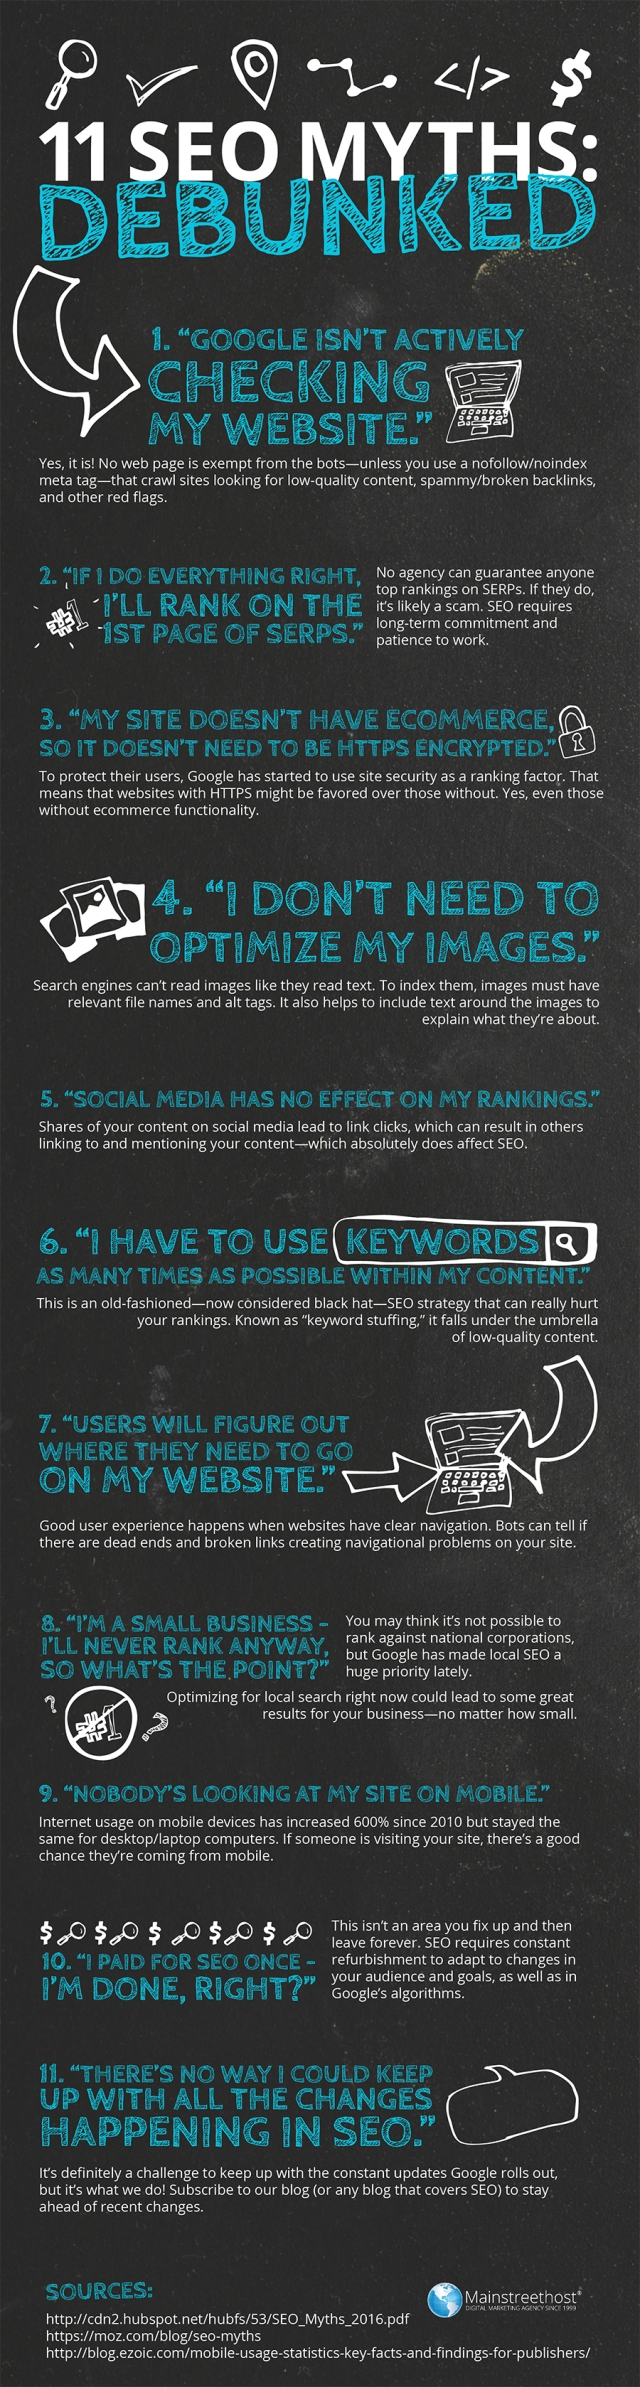 11-seo-myths-that-could-be-damaging-your-business